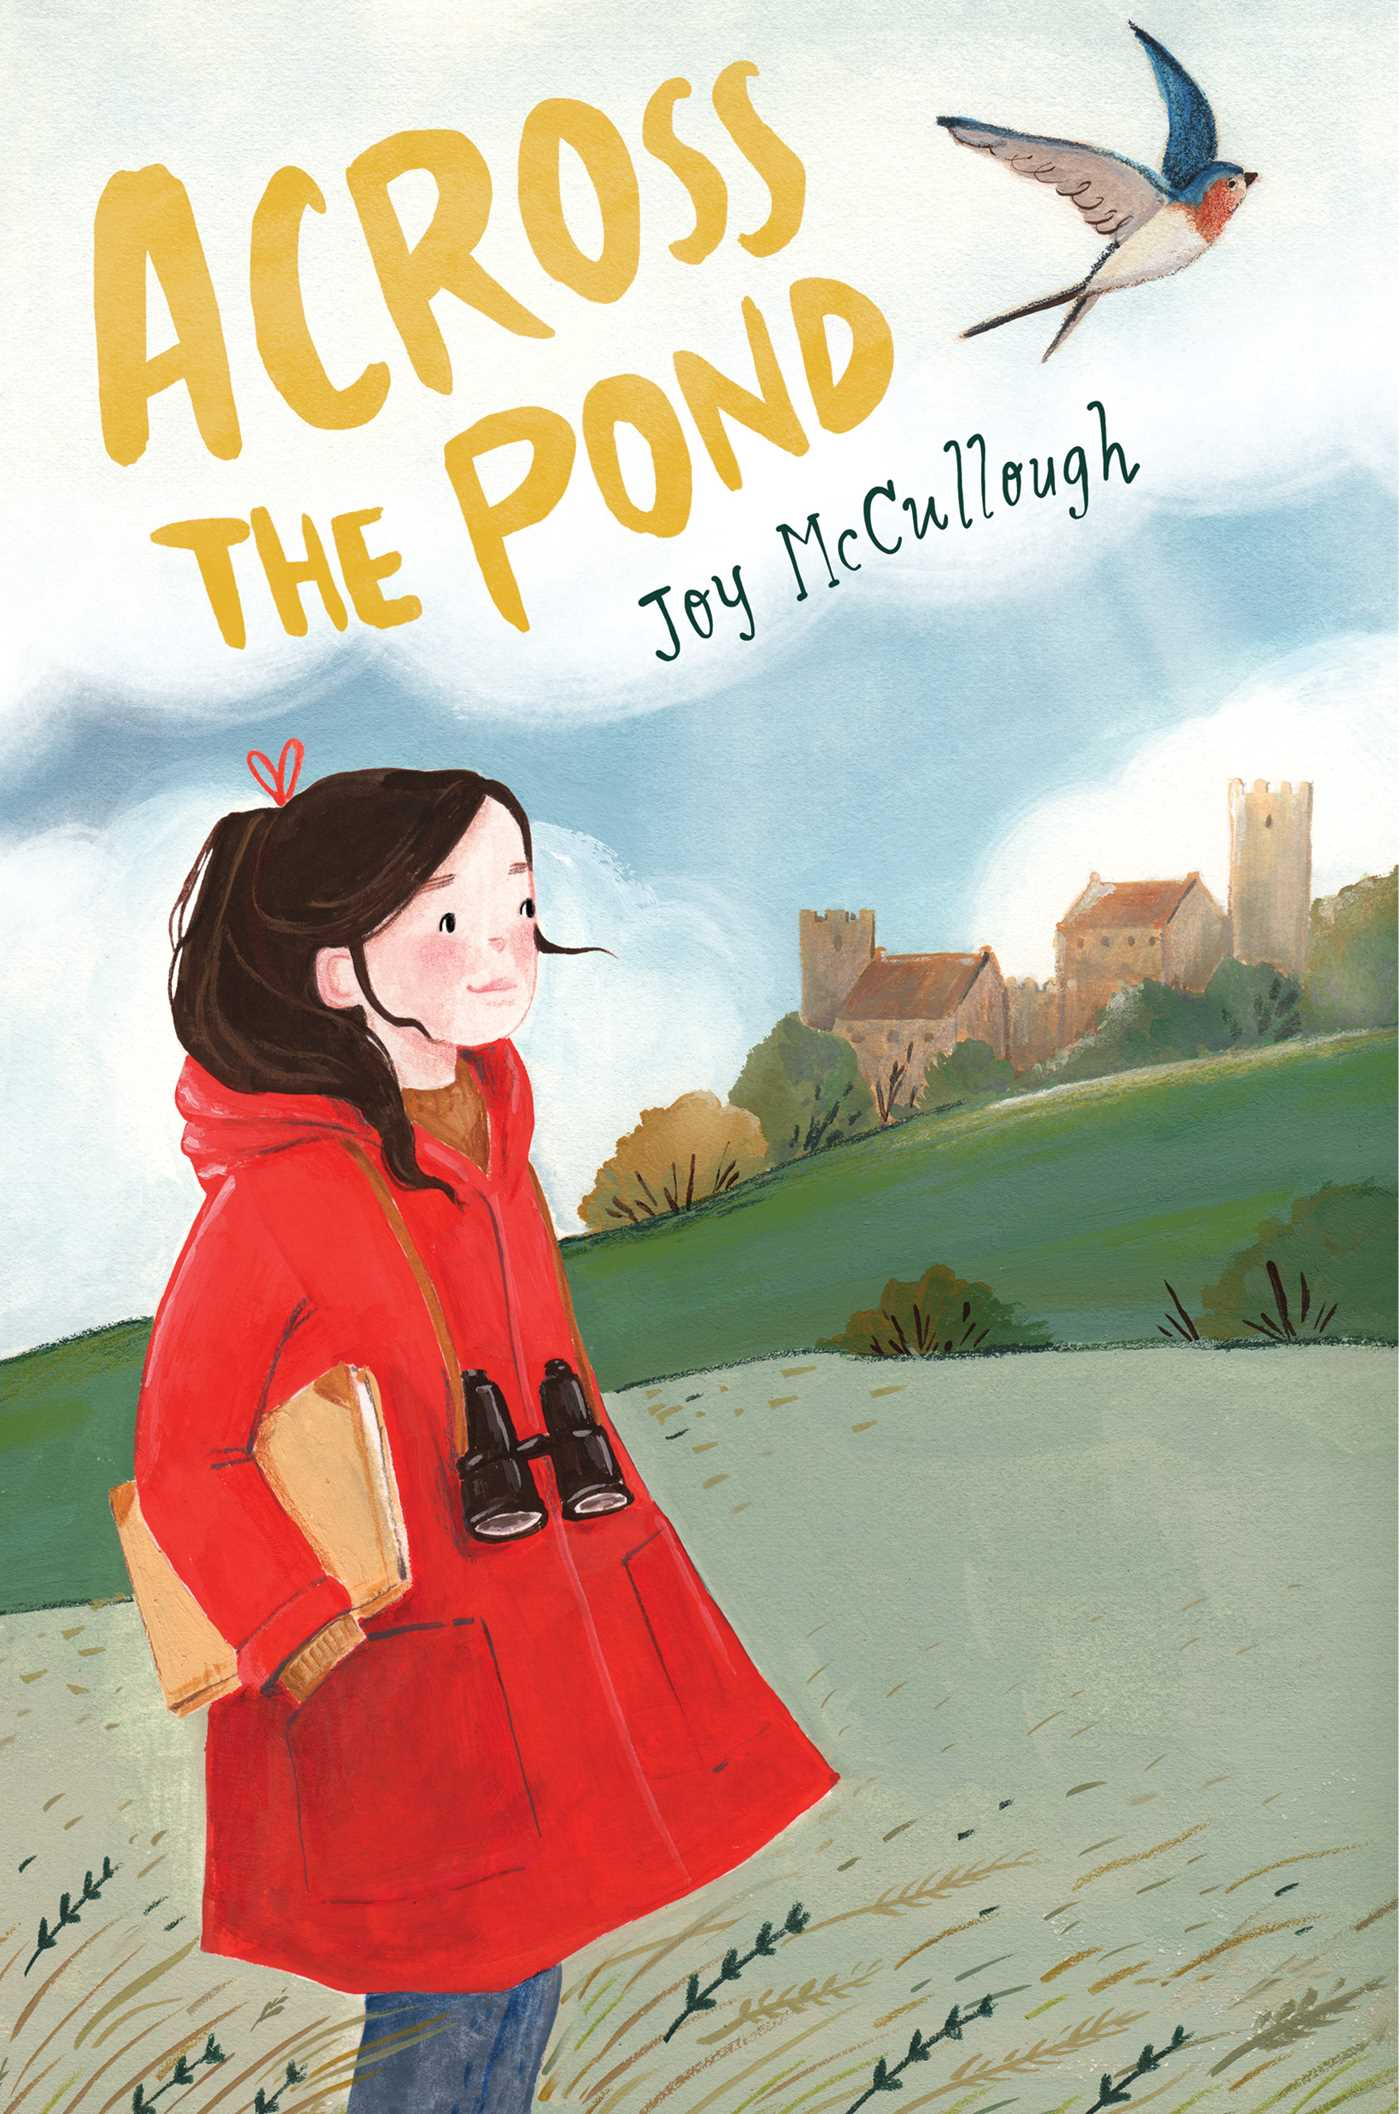 Review of Across the Pond